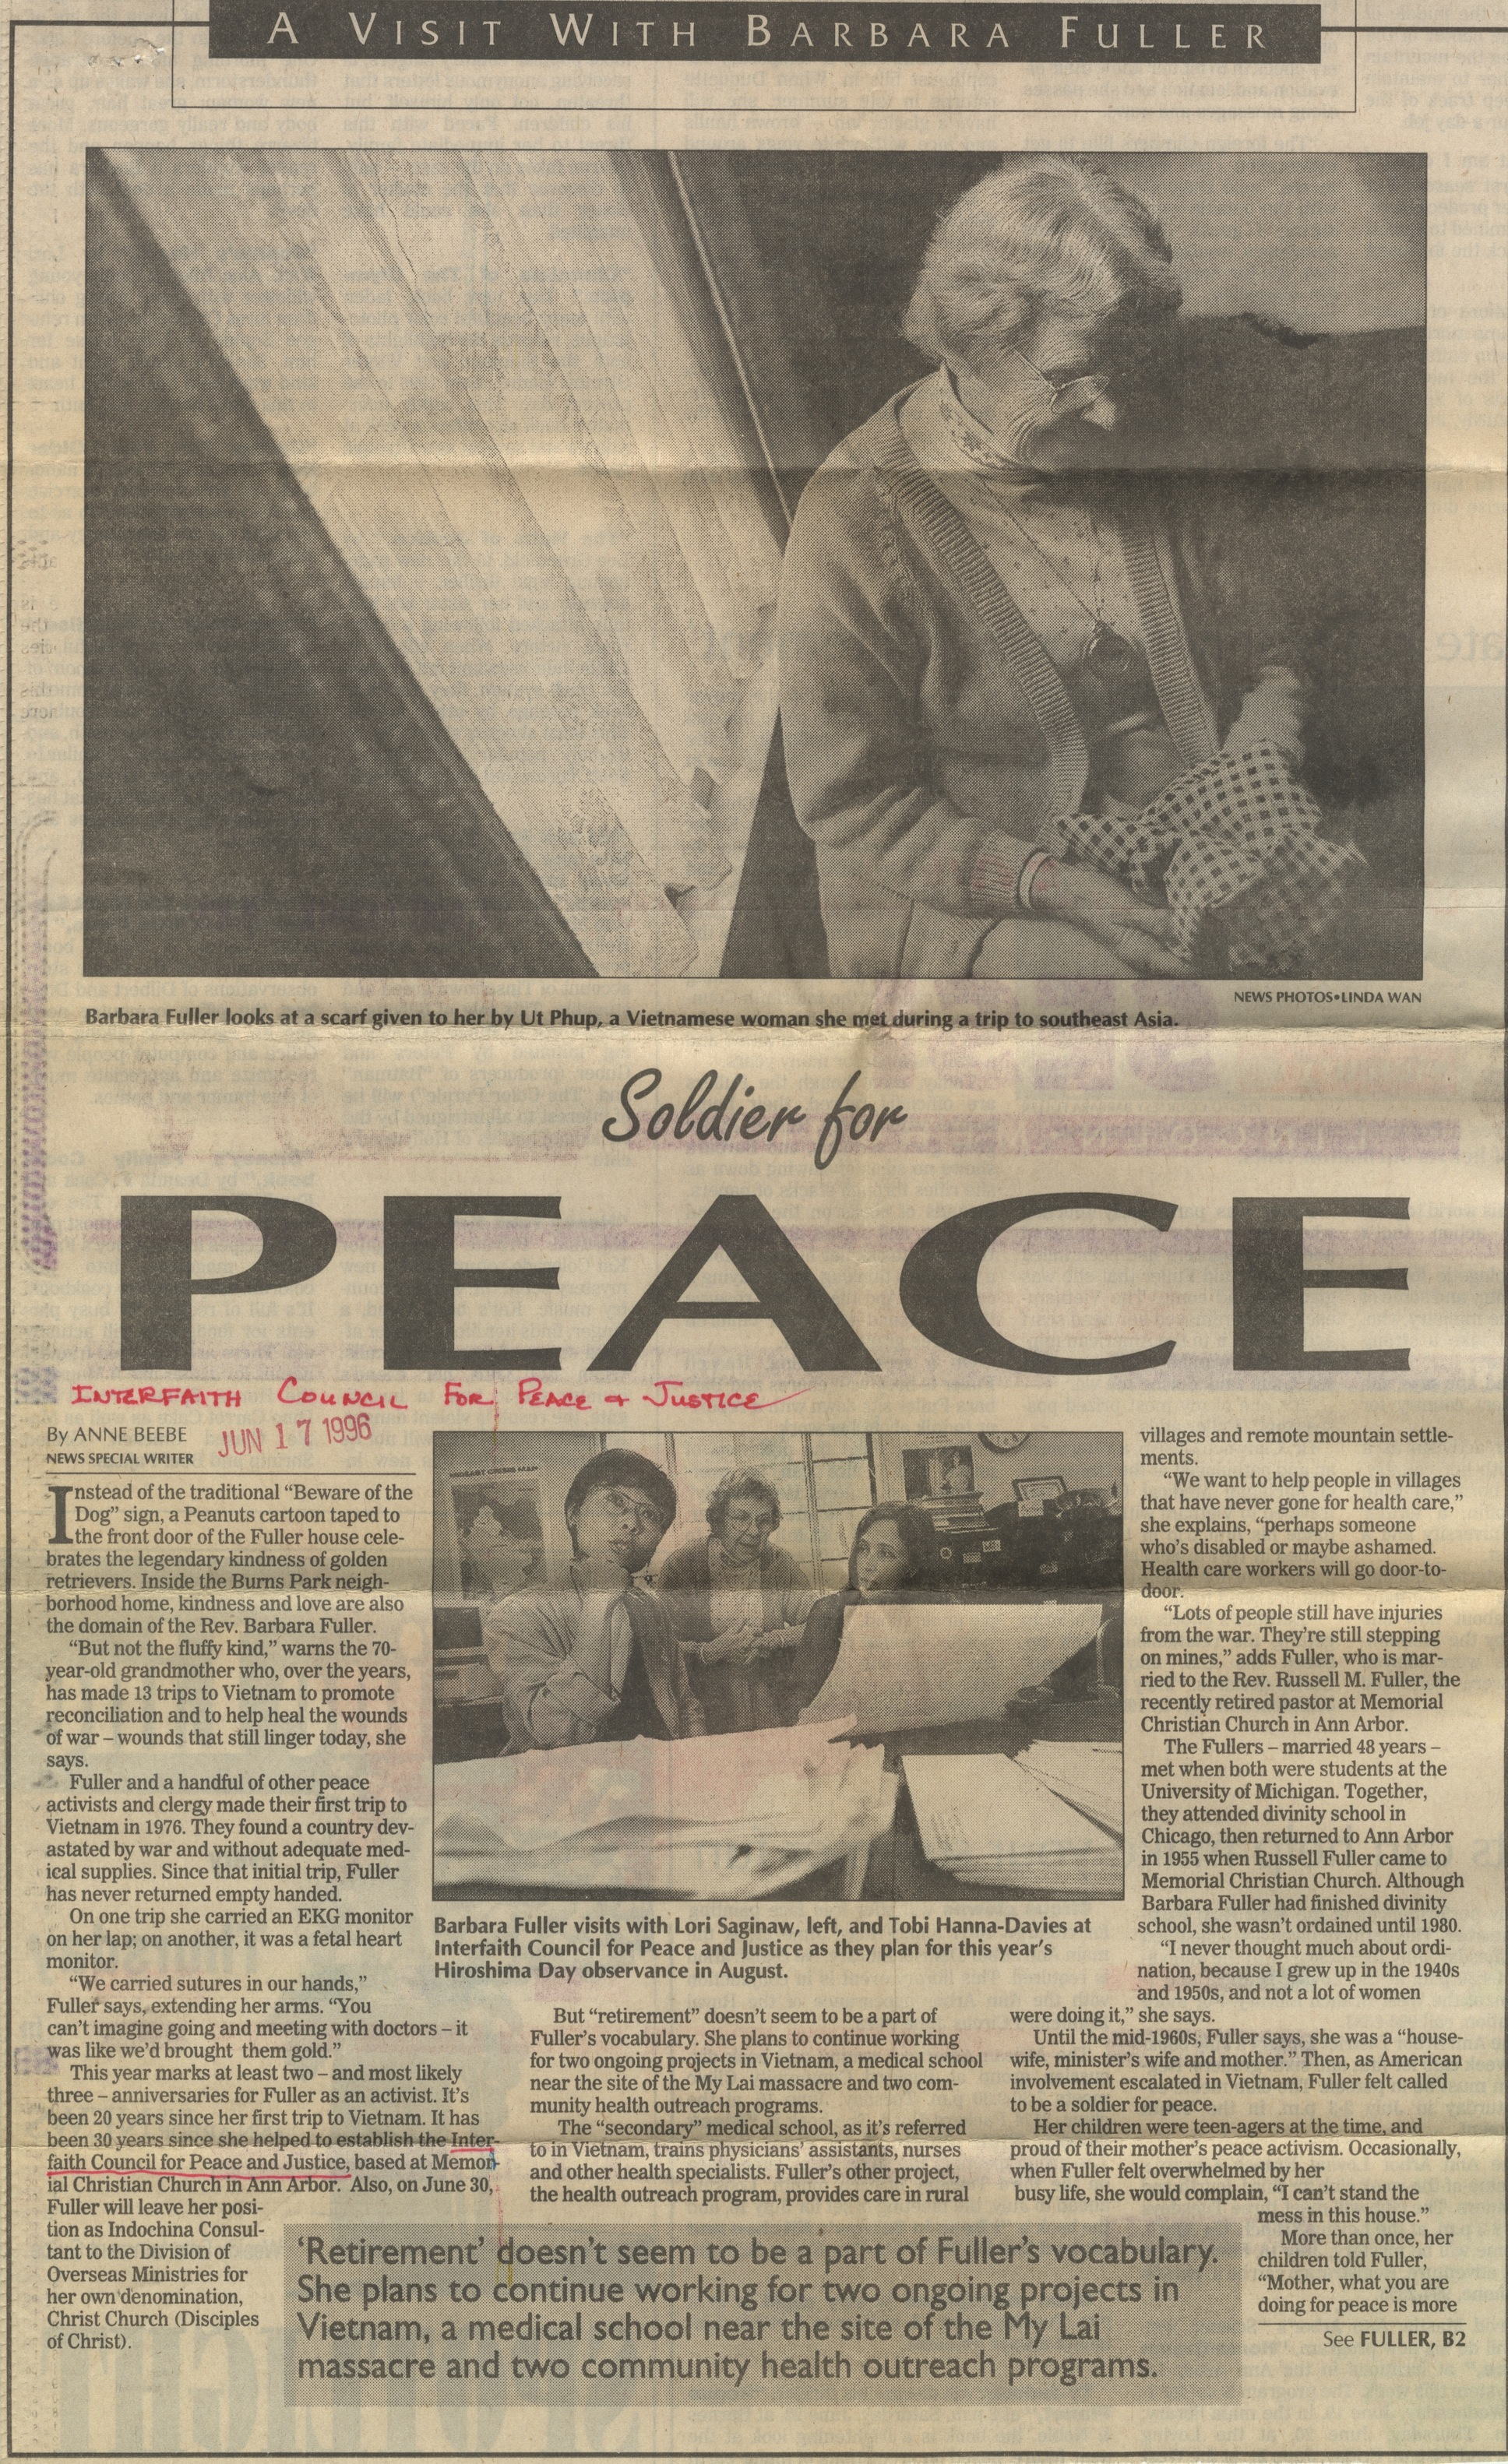 A Visit With Barbara Fuller: Soldier For Peace image